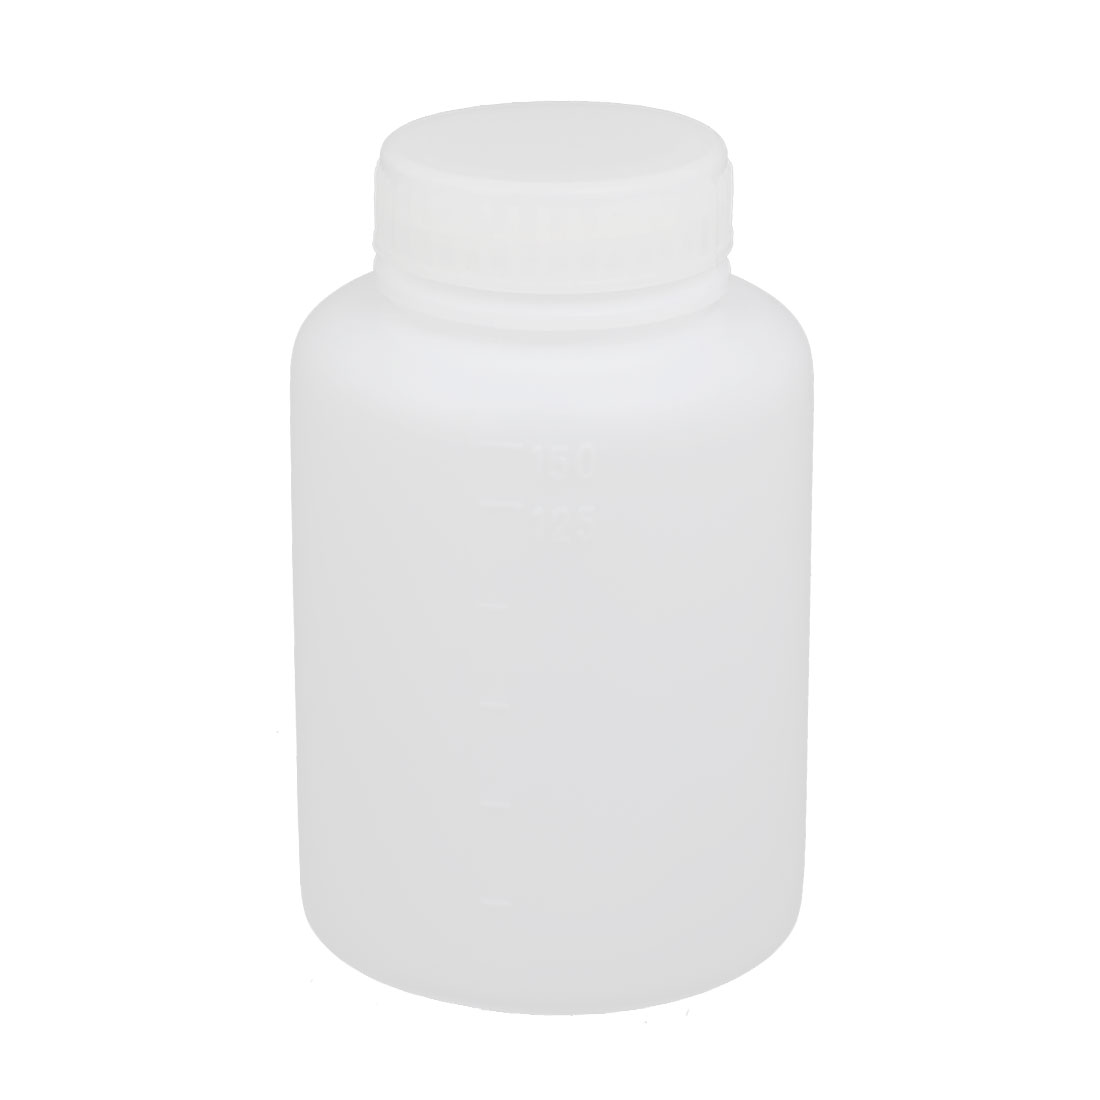 150ml 28mm Diameter Wide Mouth HDPE Plastic Round Graduated Bottle White